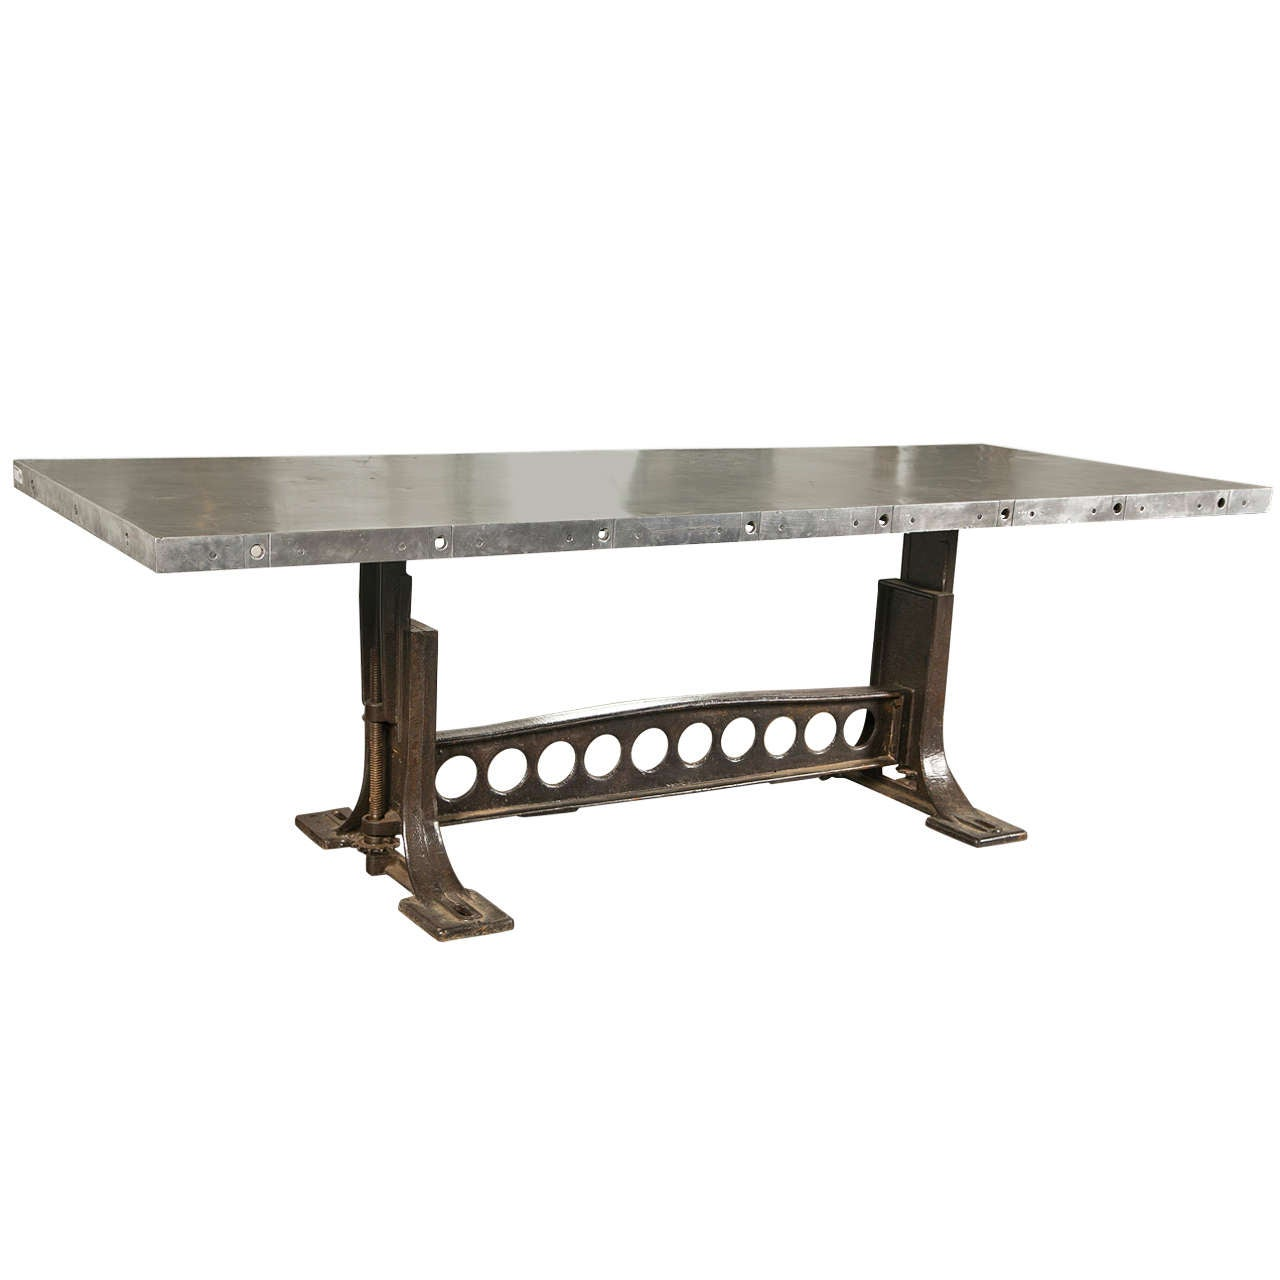 for Styling dining room table